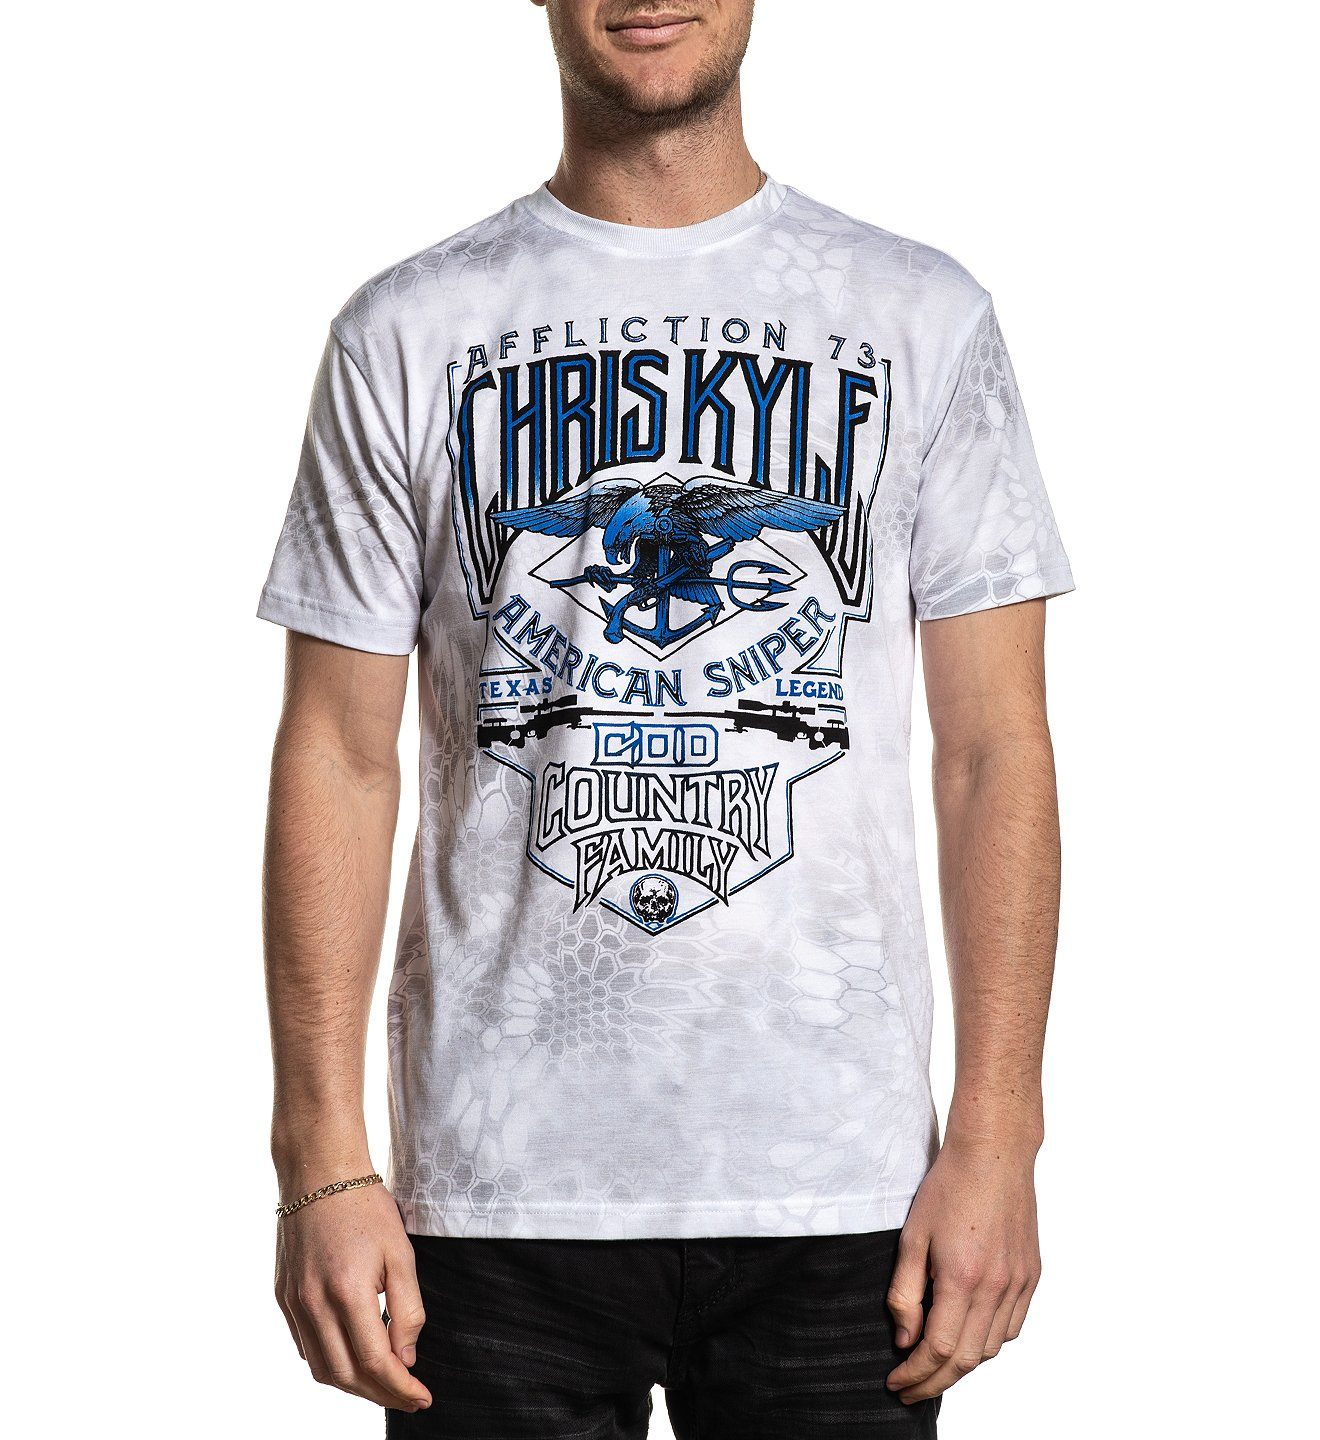 Ck Triton - Mens Short Sleeve Tees - Affliction Clothing